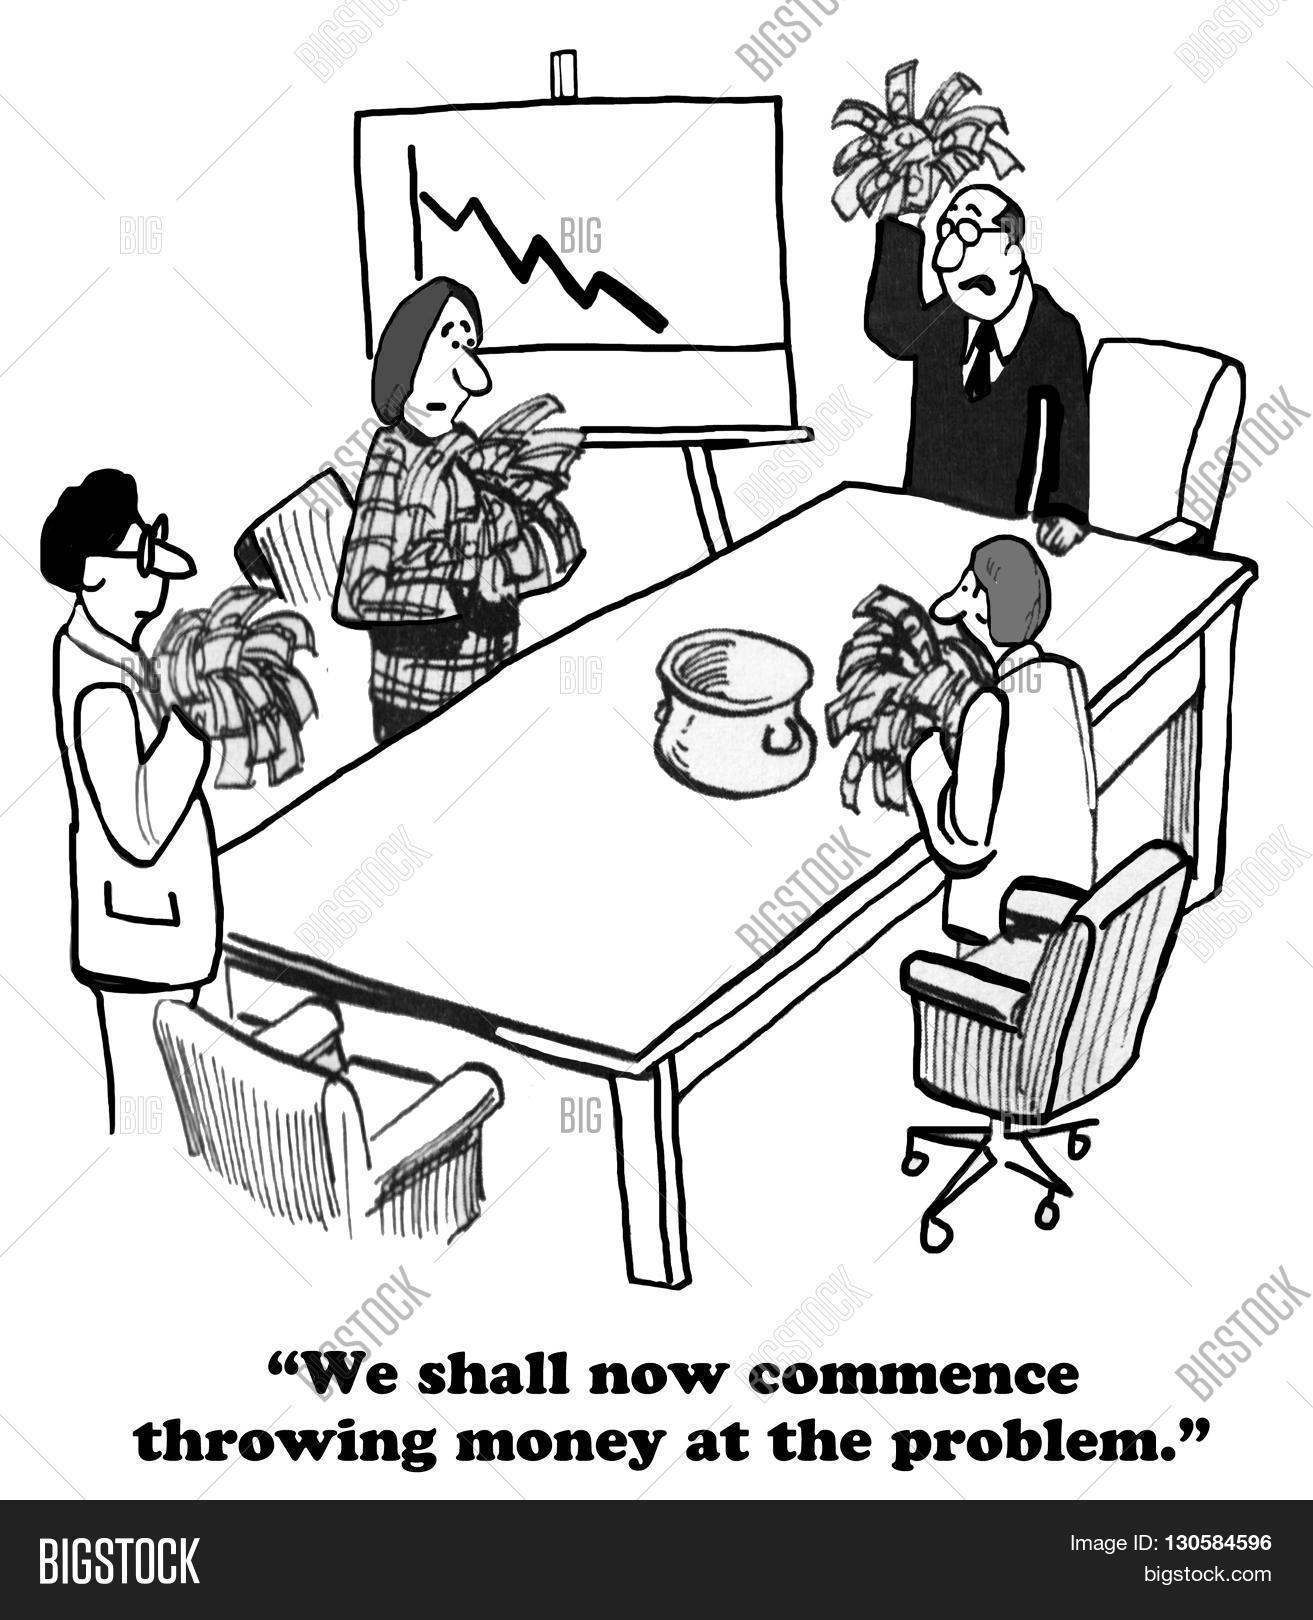 Business Cartoon About Image & Photo (Free Trial)   Bigstock